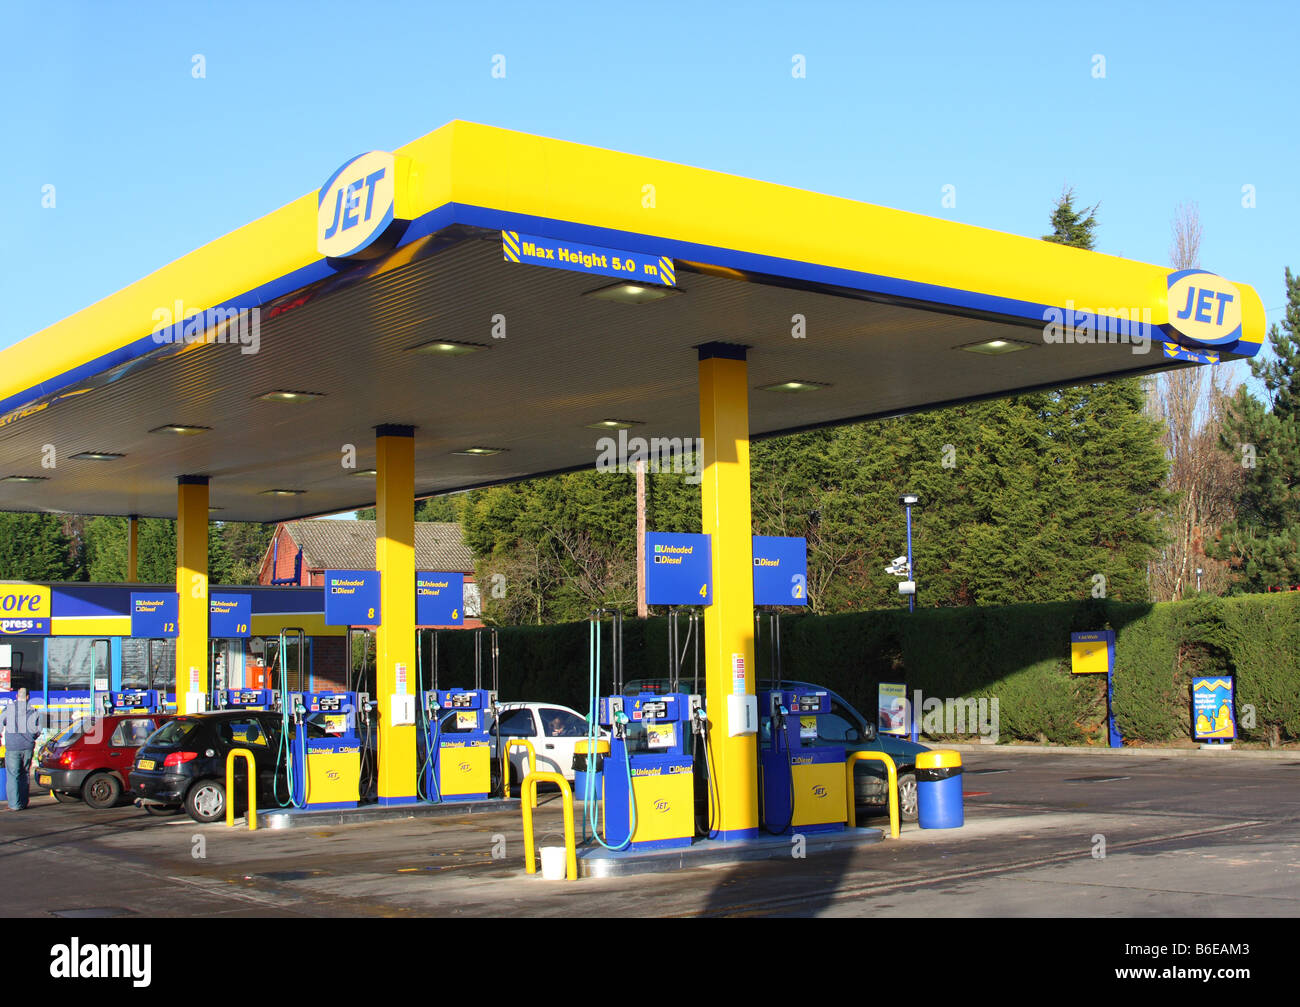 Diesel Gas Stations Near Me >> A Jet petrol station in a U.K. city Stock Photo, Royalty ...